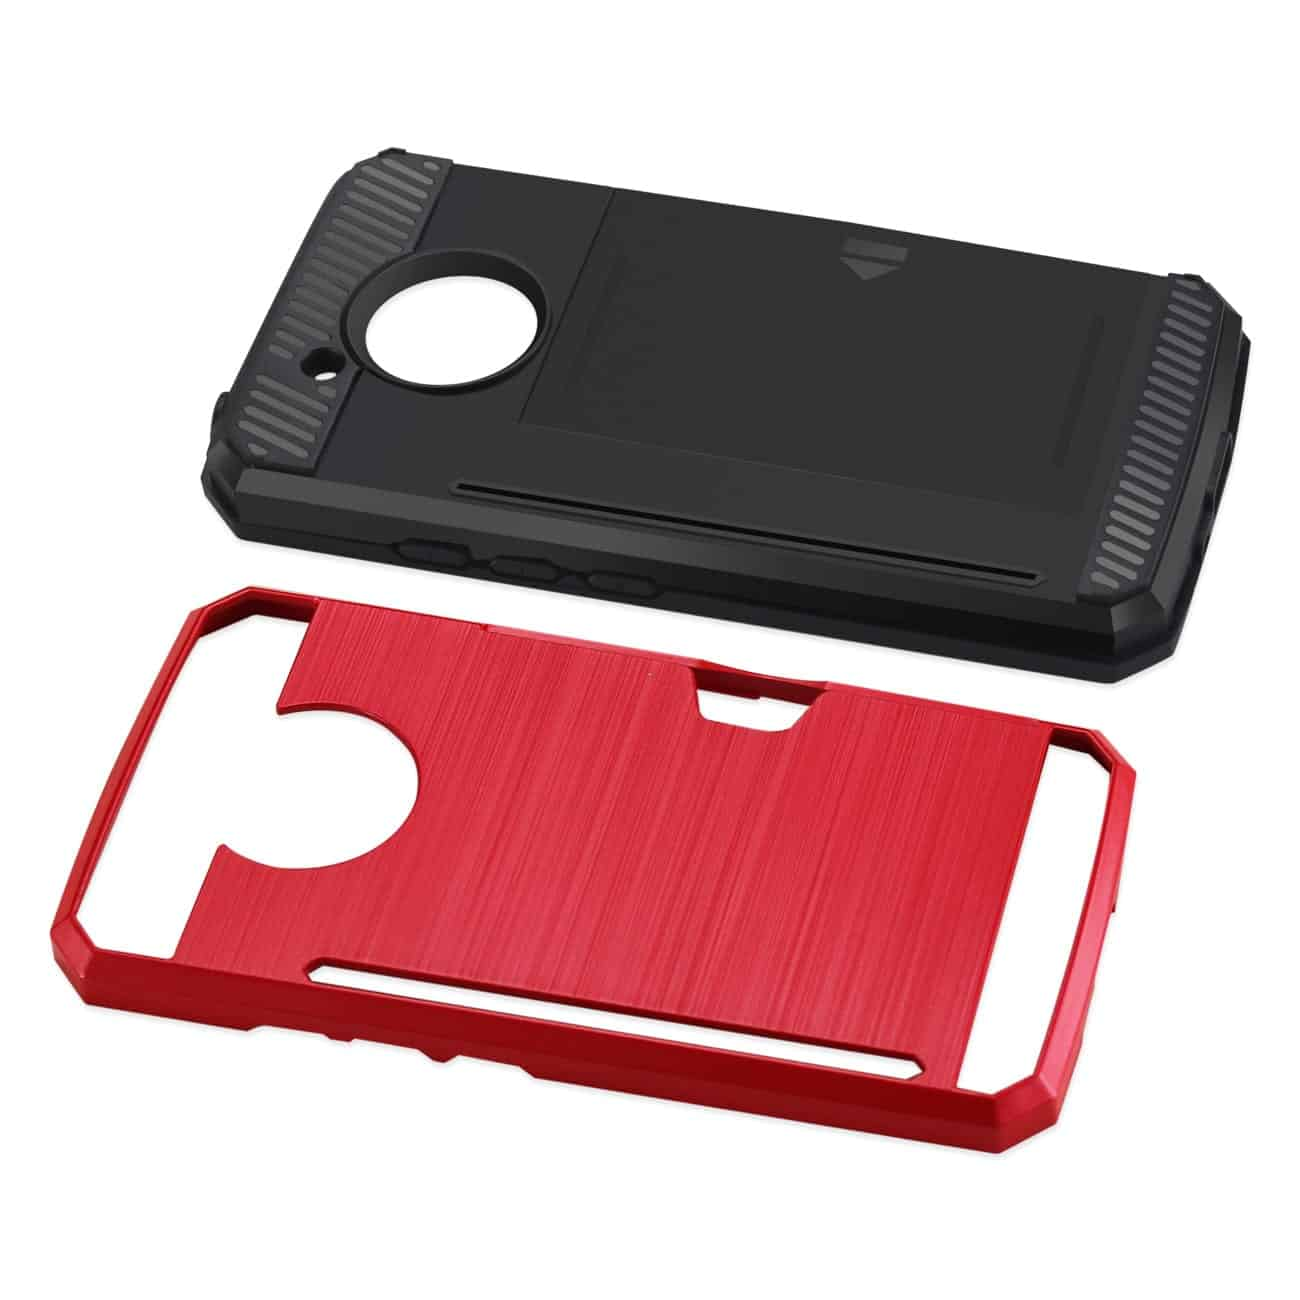 MOTOROLA MOTO E4 ACTIVE SLIM ARMOR HYBRID CASE WITH CARD HOLDER IN RED